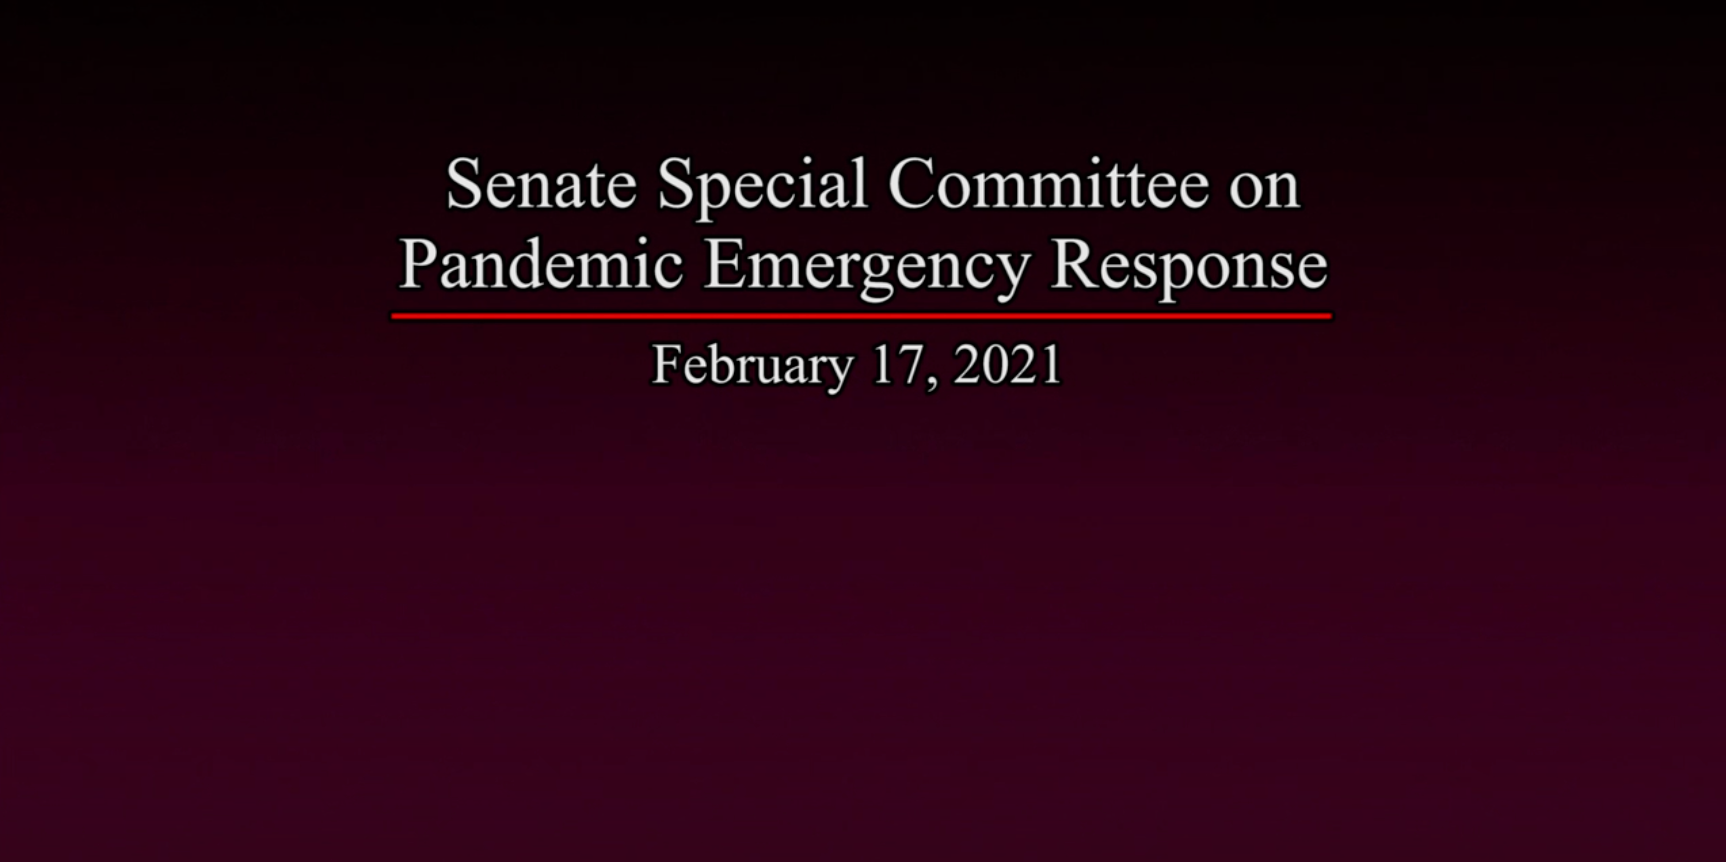 CQEL Senate Testimony: Special Committee on Pandemic Emergency Response